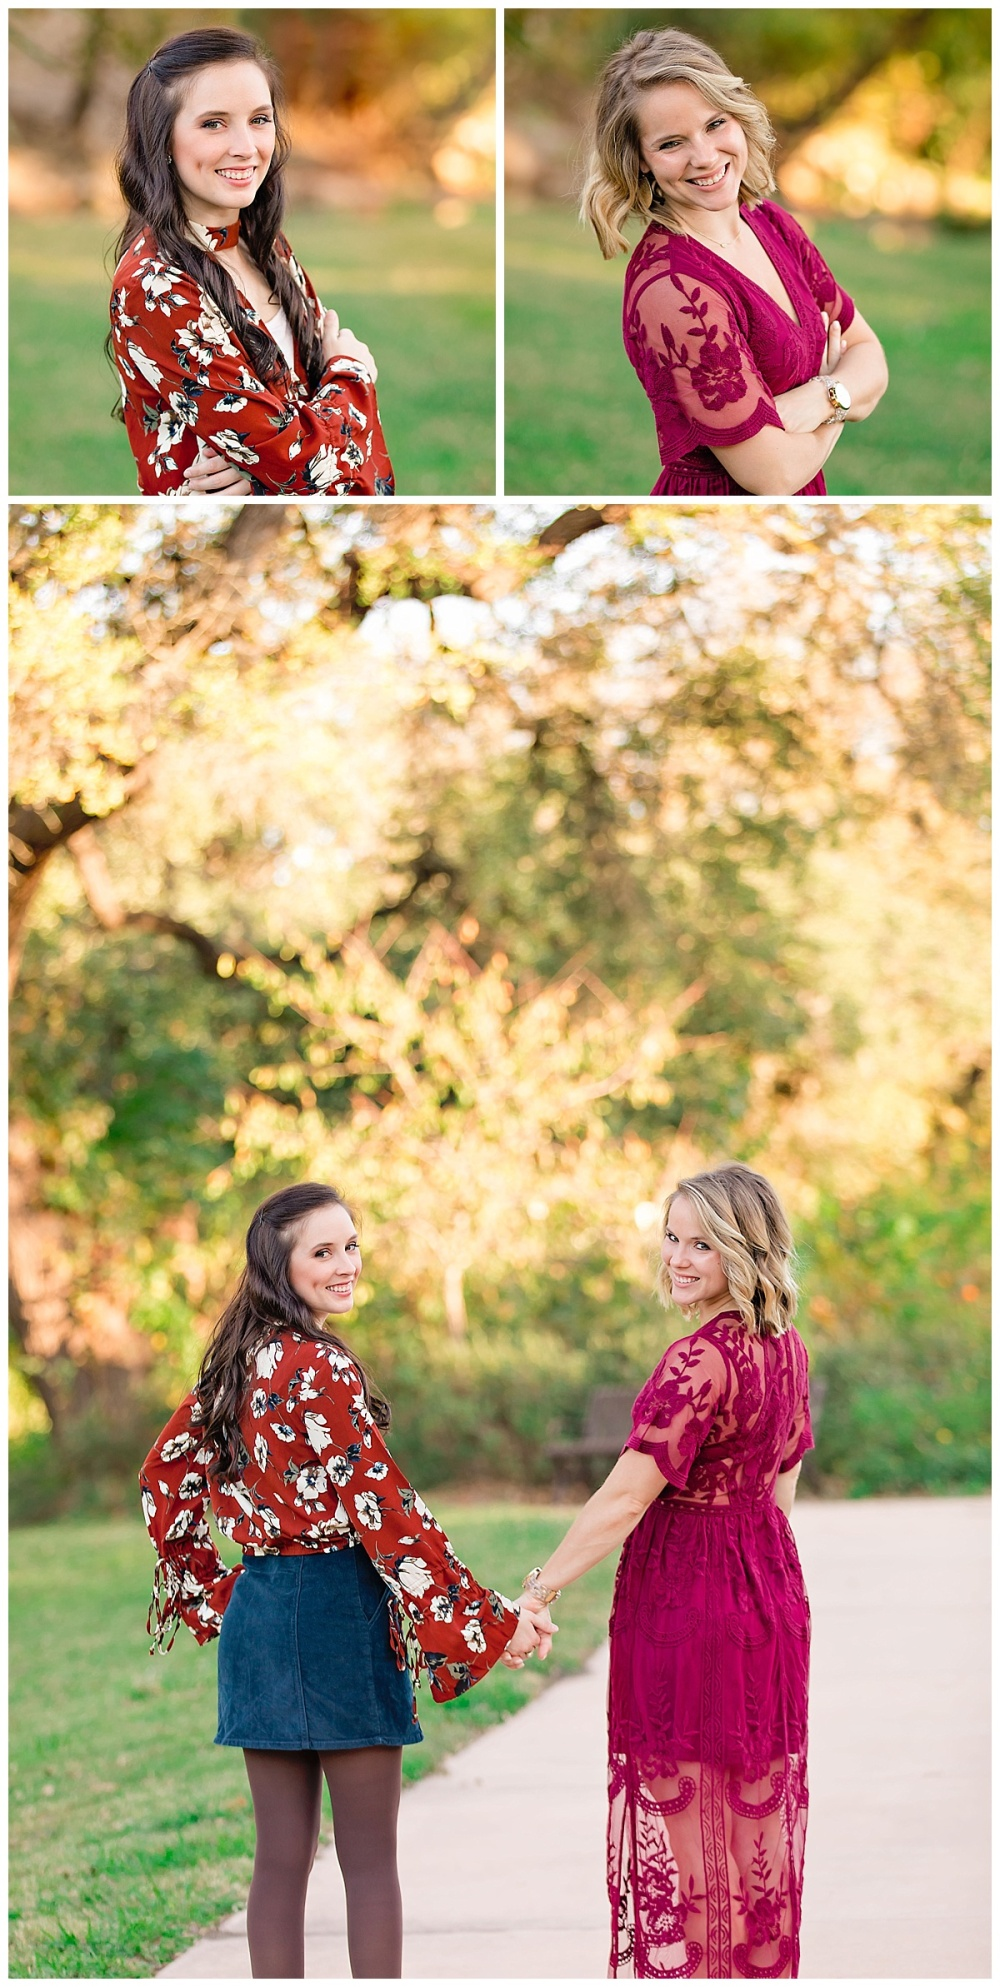 Carly-Barton-Photography-San-Antonio-Texas-Hill-Country-Fall-Heubaum_0111